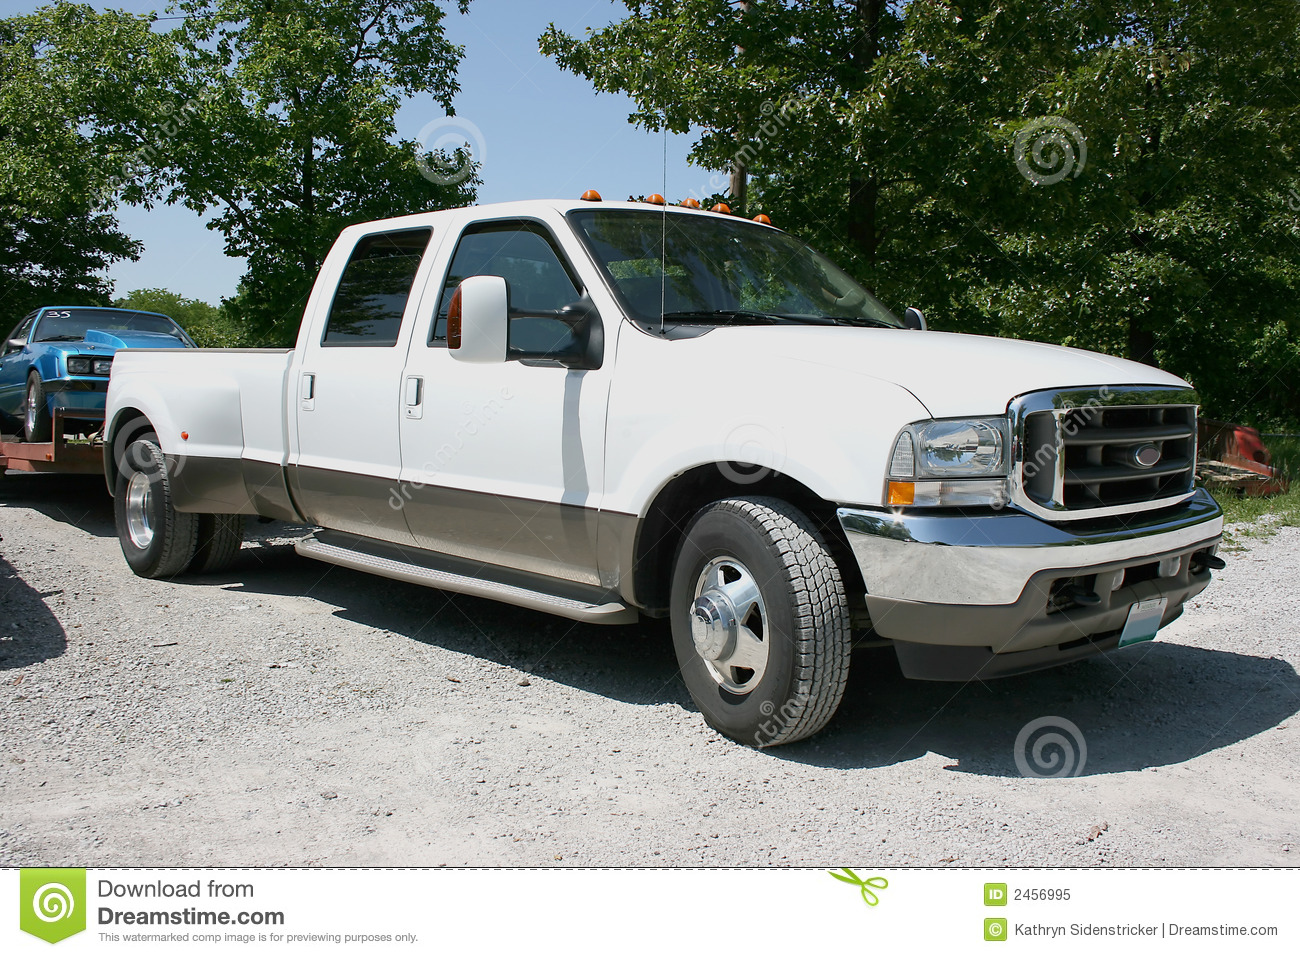 1990 ford f350 4 door with Royalty Free Stock Photo 2004 Ford Super Duty Truck Image2456995 on 1311 2006 Ford F 250 King Ranch House Full Of Gearheads likewise 1995 Ford F 350 Xlt Centurion Conversion Dually Custom Crew Cab Lb Truck 6fb97e93e8a5164f9234a7508d15ba85 likewise 1997 Ford F 350 4x4 Crewcab Powerstroke Long Bed Lifted Truck 1122981 also 1996 Ford F 250 Xlt Lifted Obs Classic Big Block 460 4x4 Dana 60 Truck Fde1576f5ce22c46a427186636447ed7 additionally Royalty Free Stock Photo 2004 Ford Super Duty Truck Image2456995.